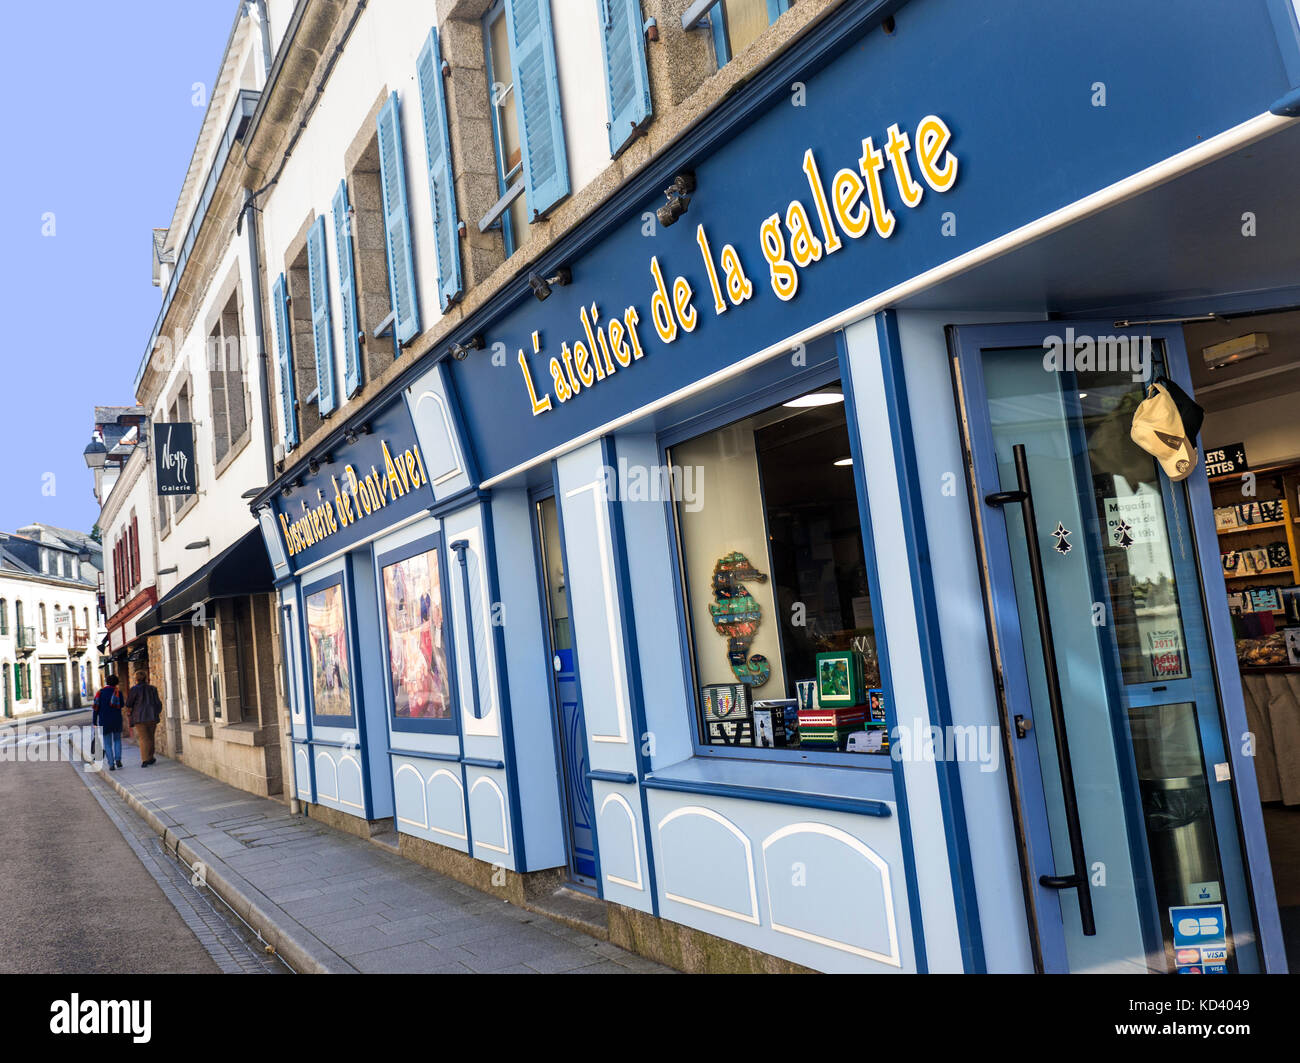 Renowned 'Biscuiterie' shop selling galettes, biscuits cakes specialities shop.Pont-Aven Brittany France - Stock Image